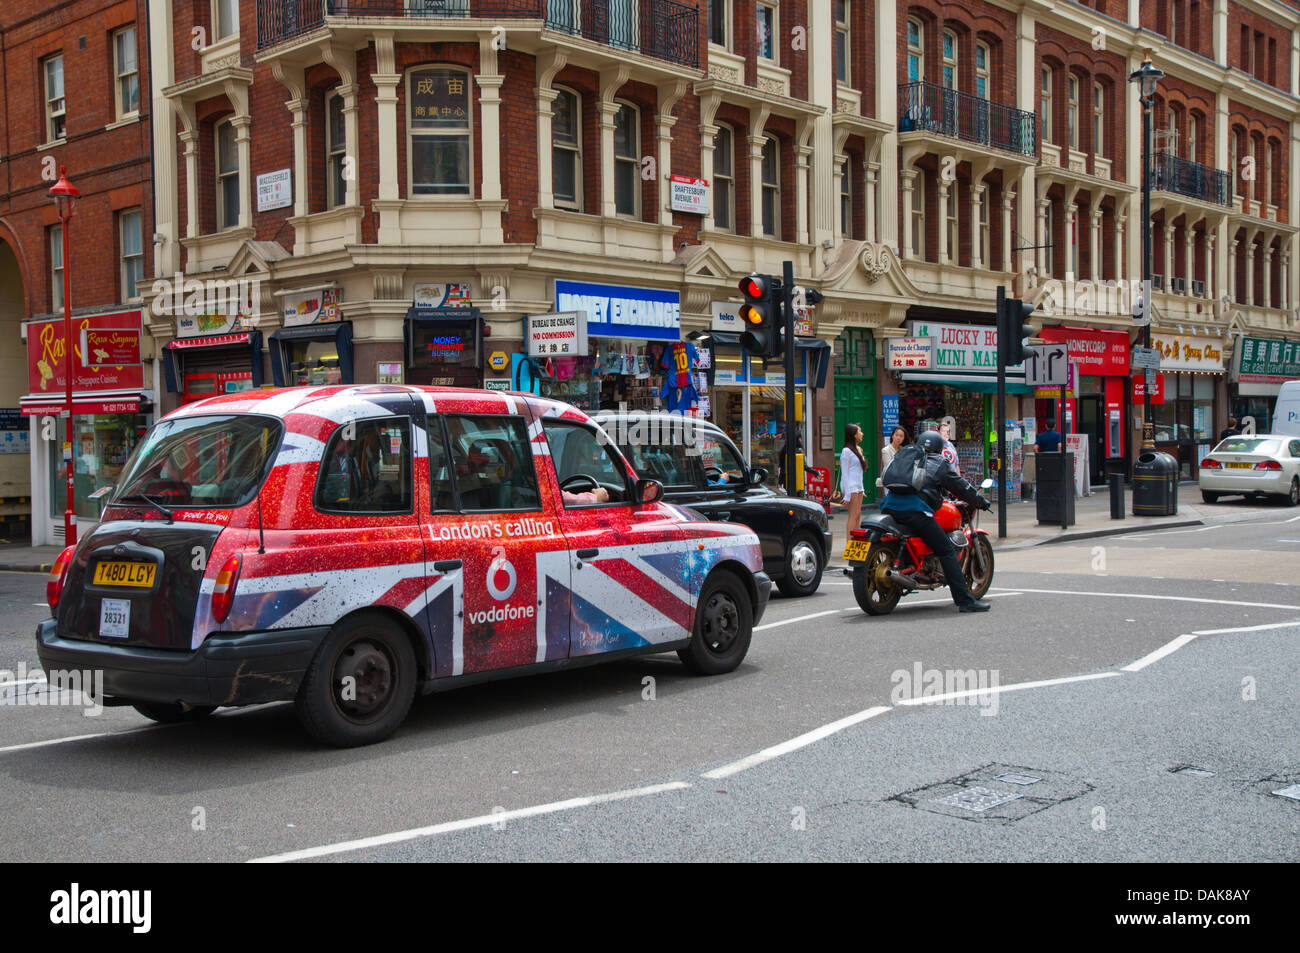 Traffic in Shaftesbury Avenue street central London England Britain UK Europe - Stock Image